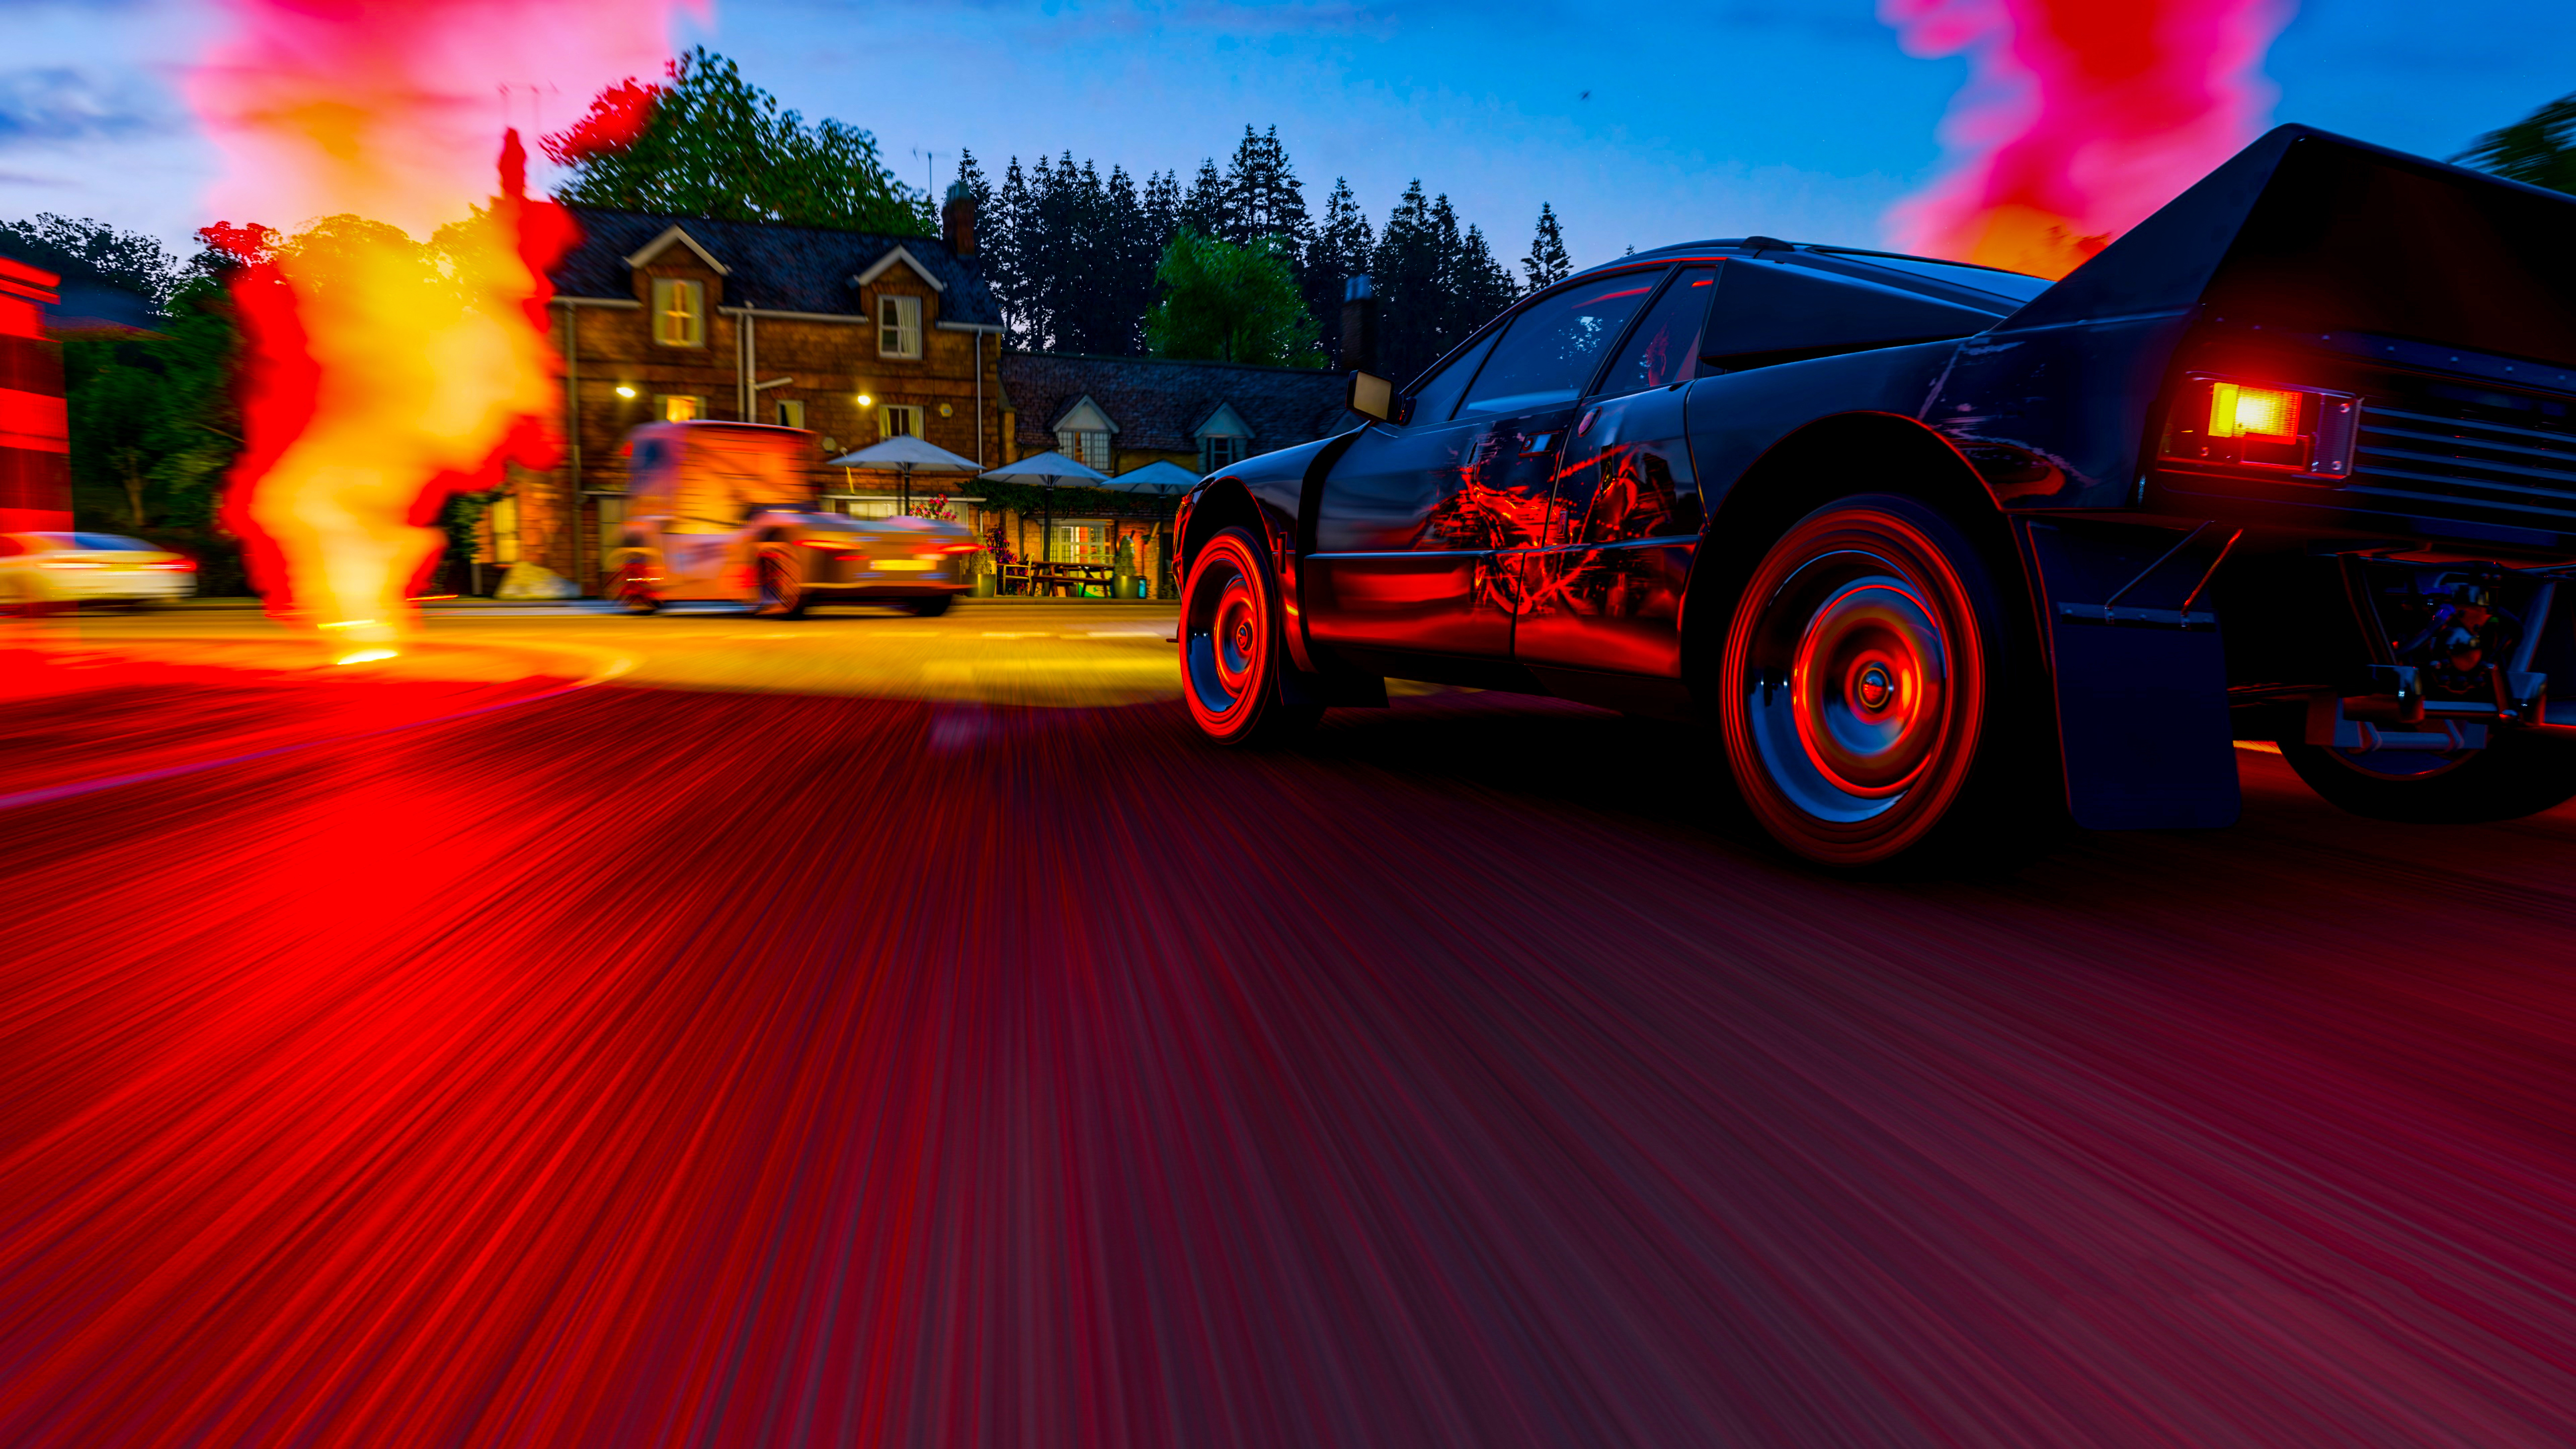 Forza horizon 4 2018 5k hd games 4k wallpapers images backgrounds photos and pictures - Forza logo wallpaper ...